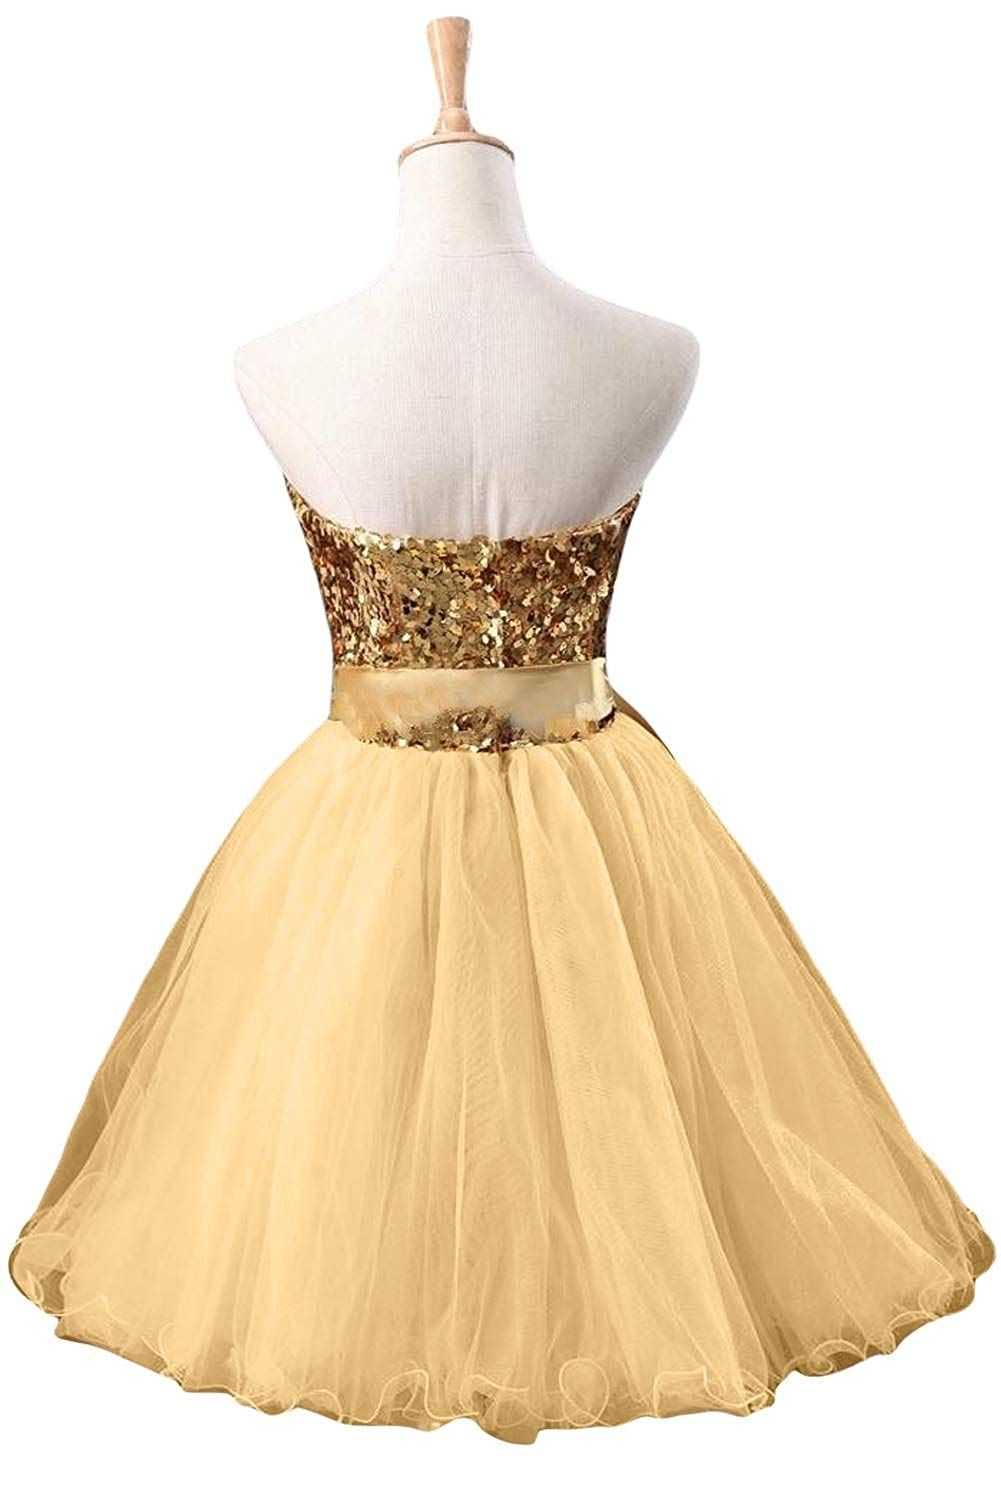 Sunvary Gold Sequin and Tulle Cocktail Prom Dresses Girls Bridesmaid